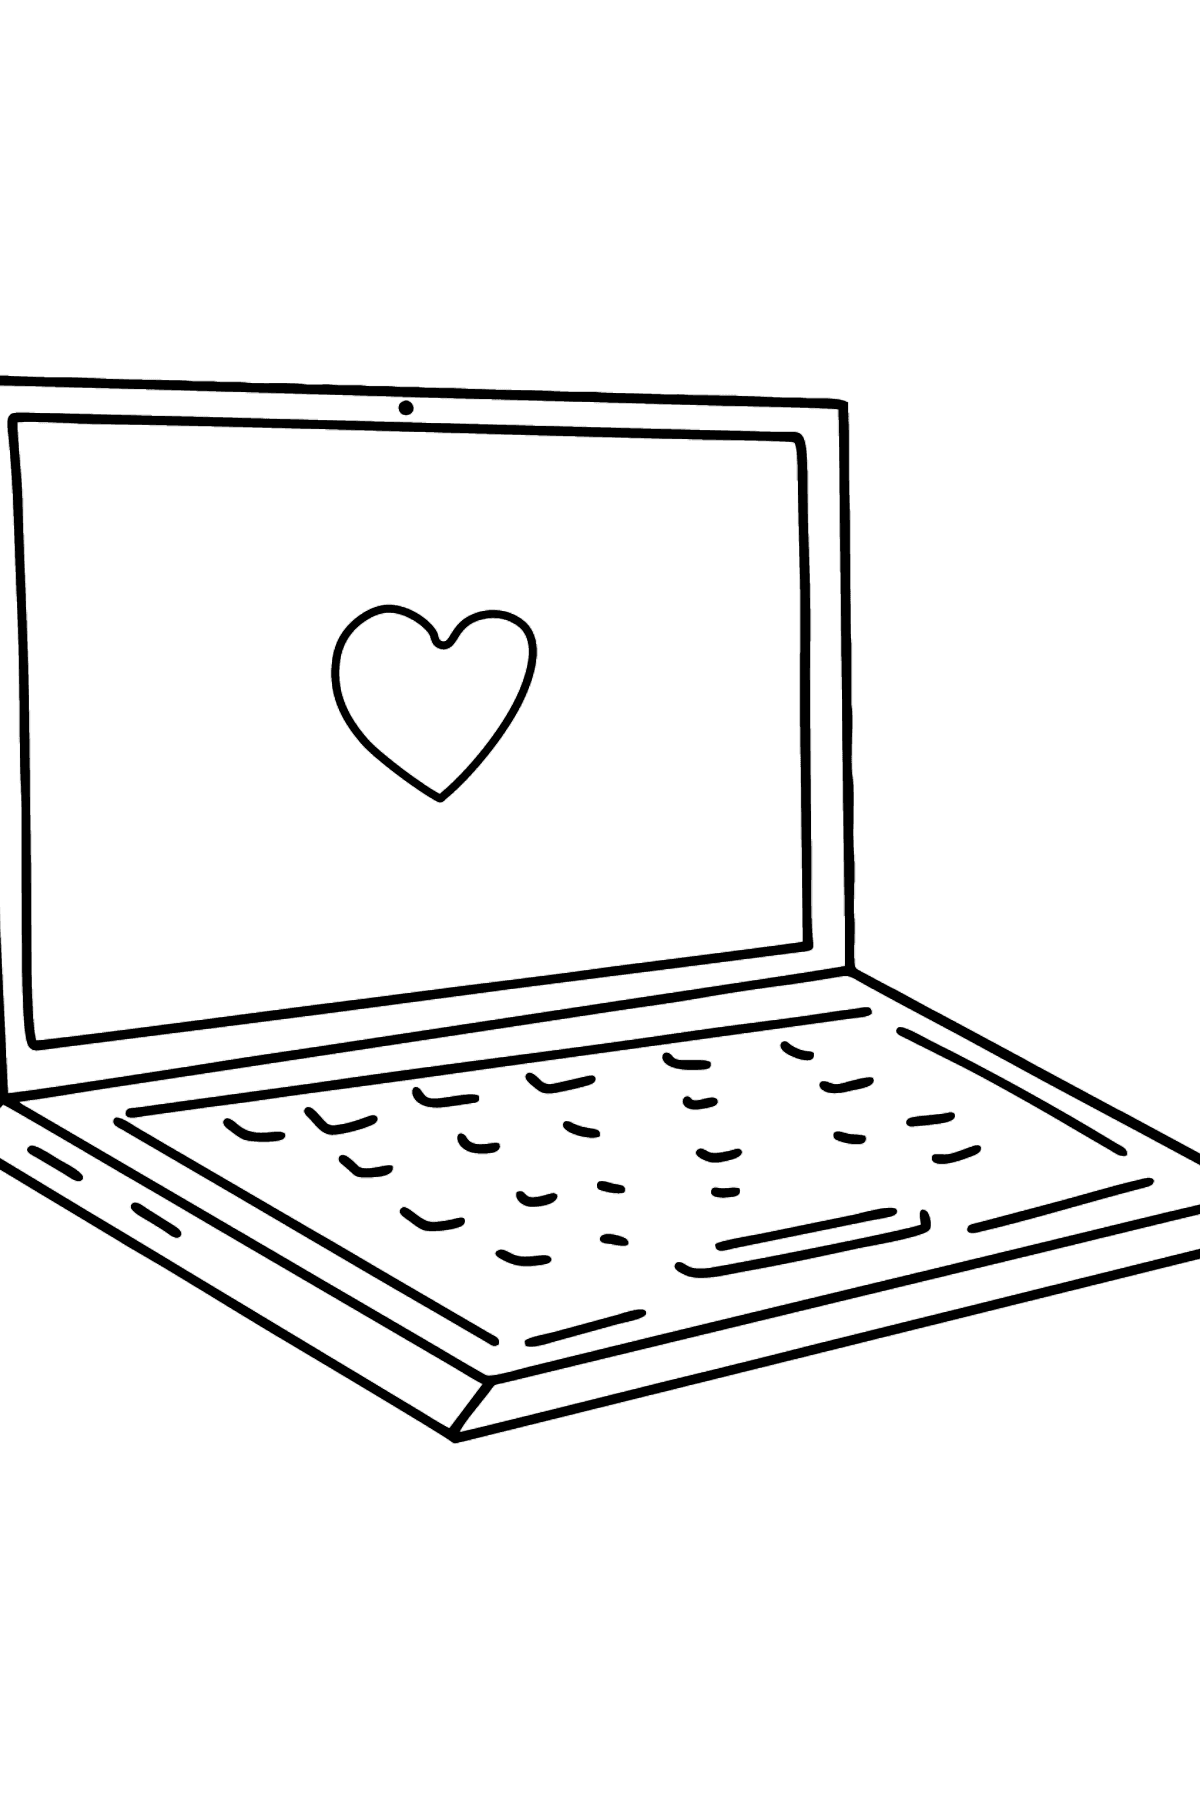 Notebook coloring page - Coloring Pages for Kids